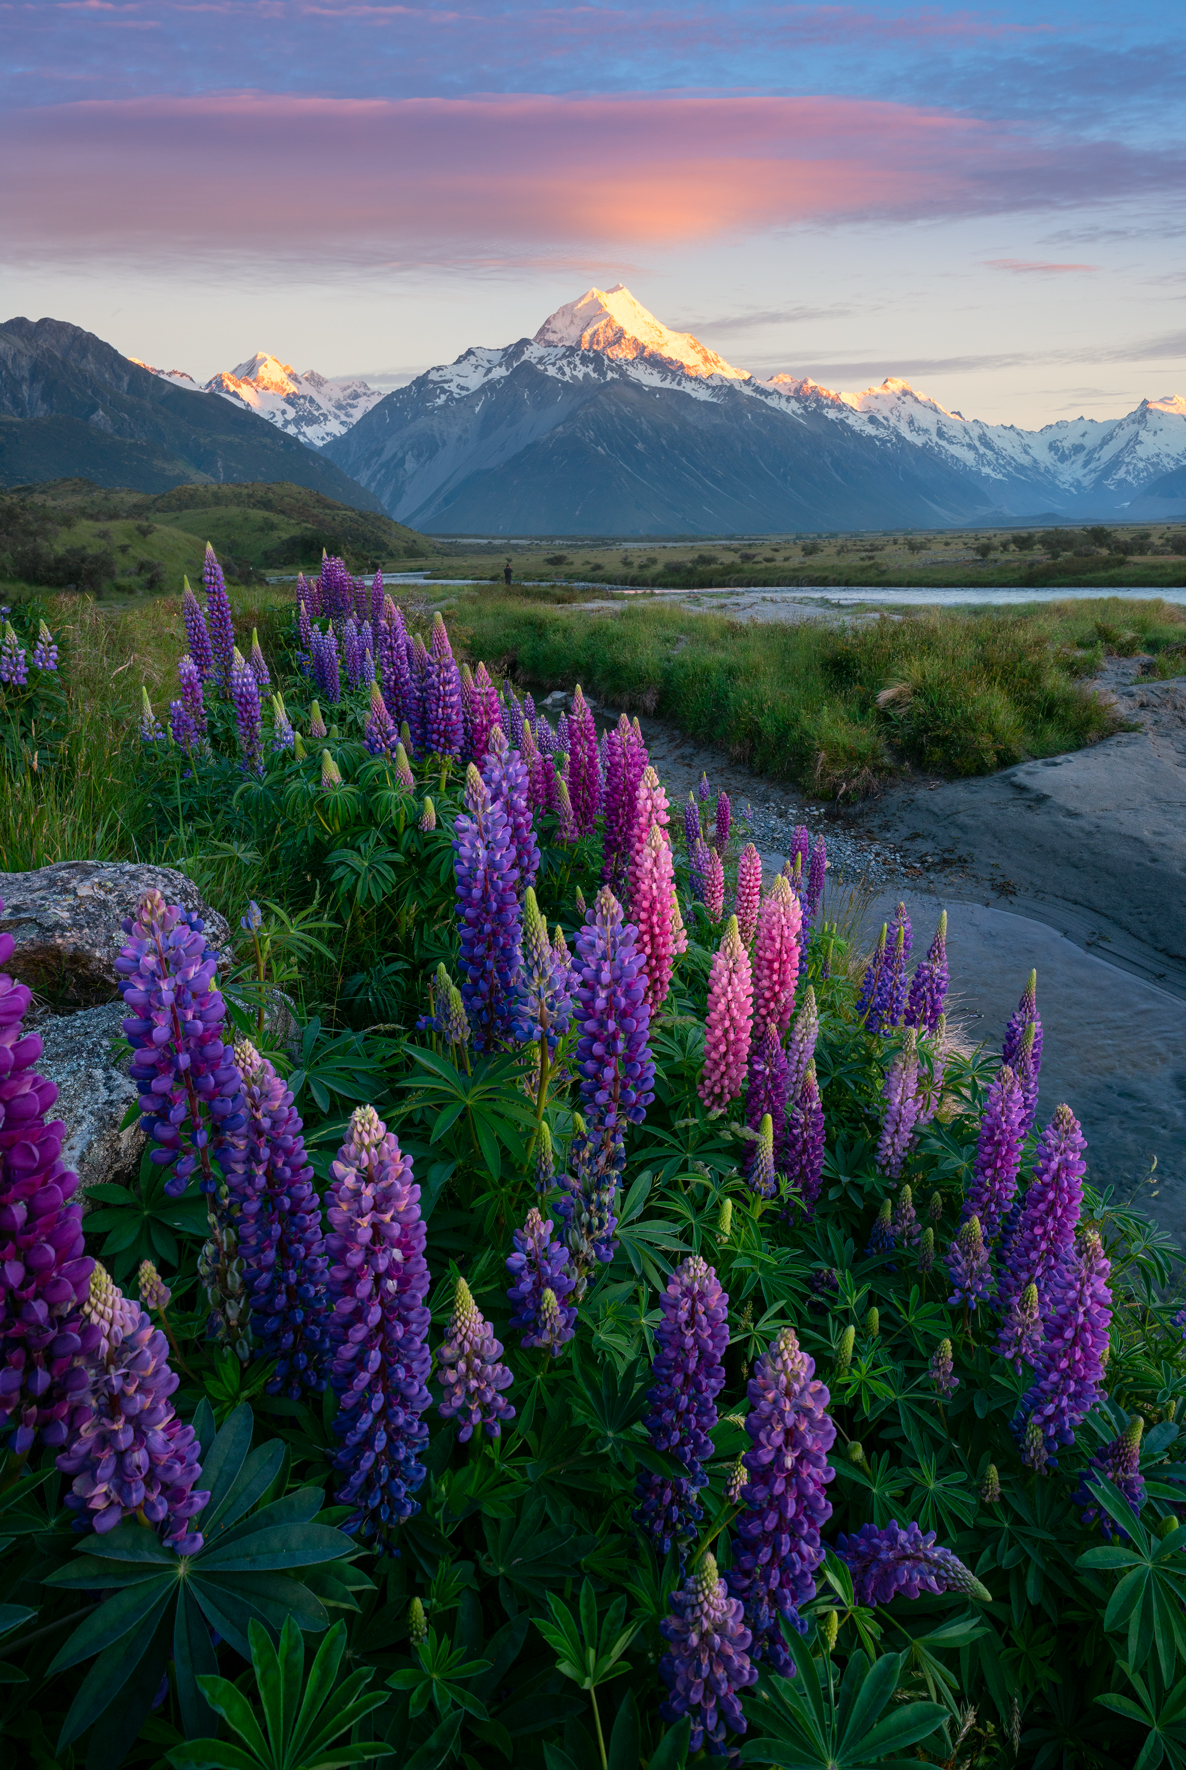 Lupin flowers and Mount Cook, New Zeland